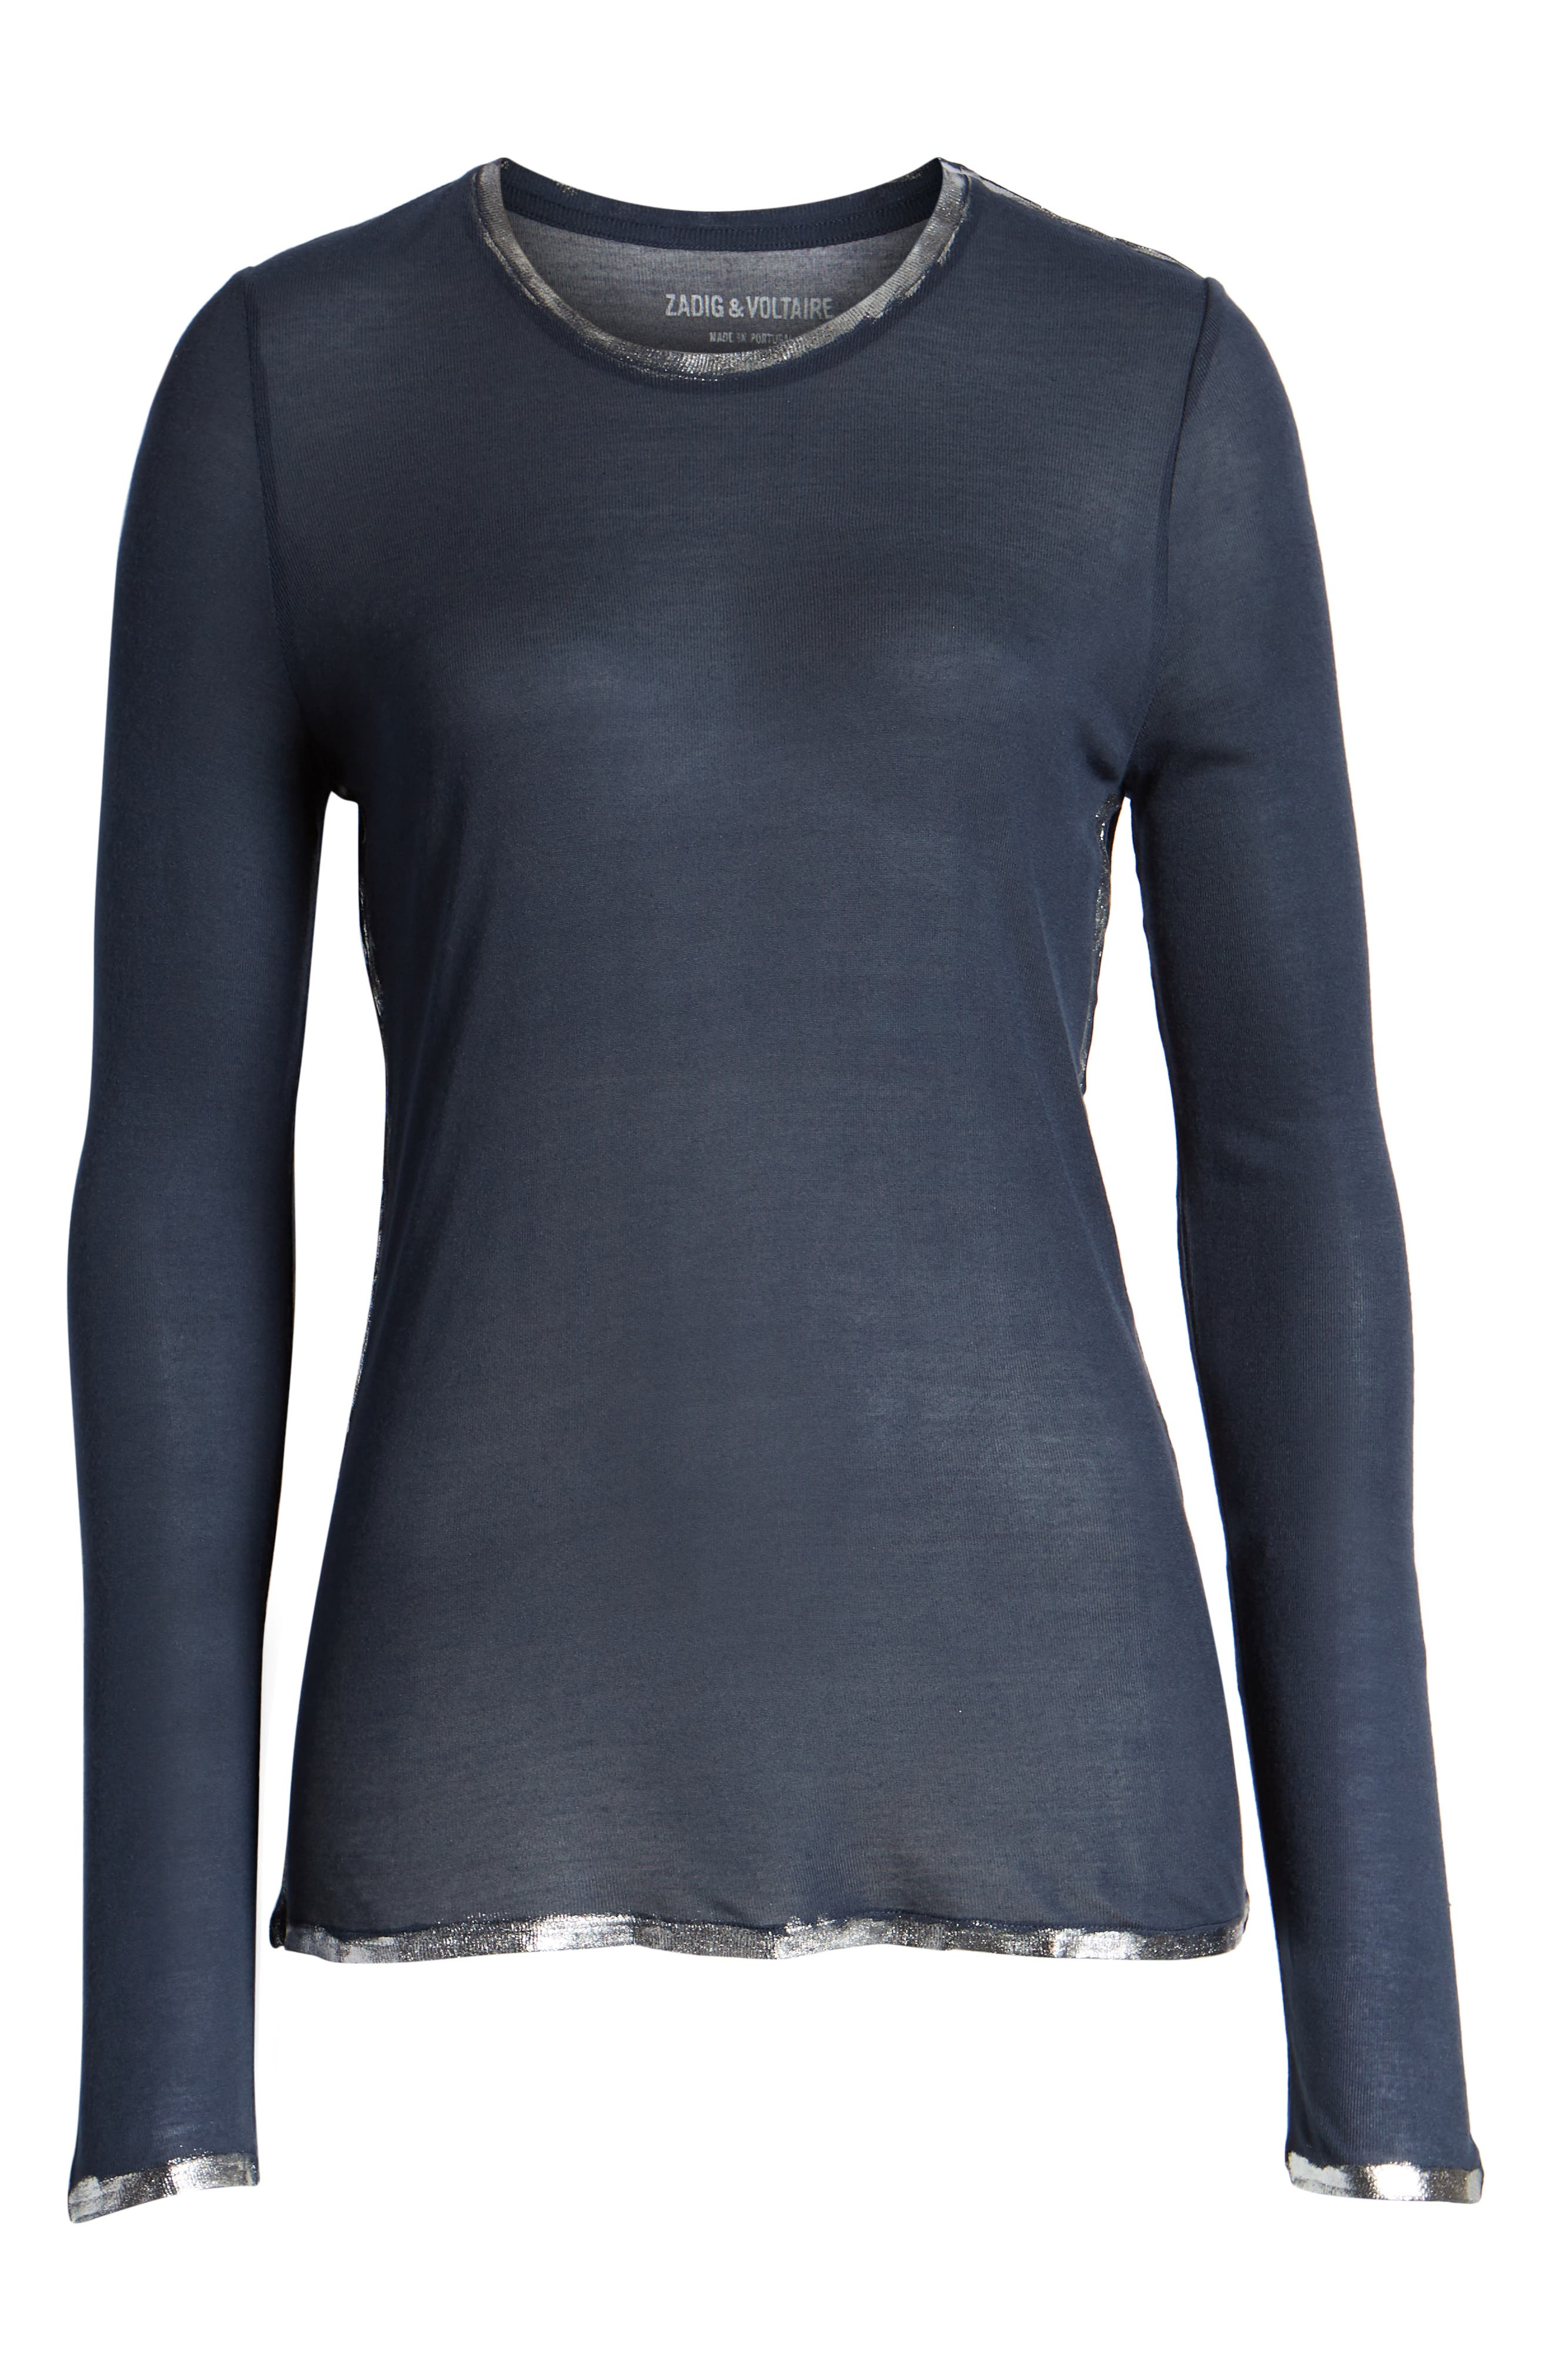 ZADIG & VOLTAIRE, Willy Foil Tee, Alternate thumbnail 6, color, MARINE